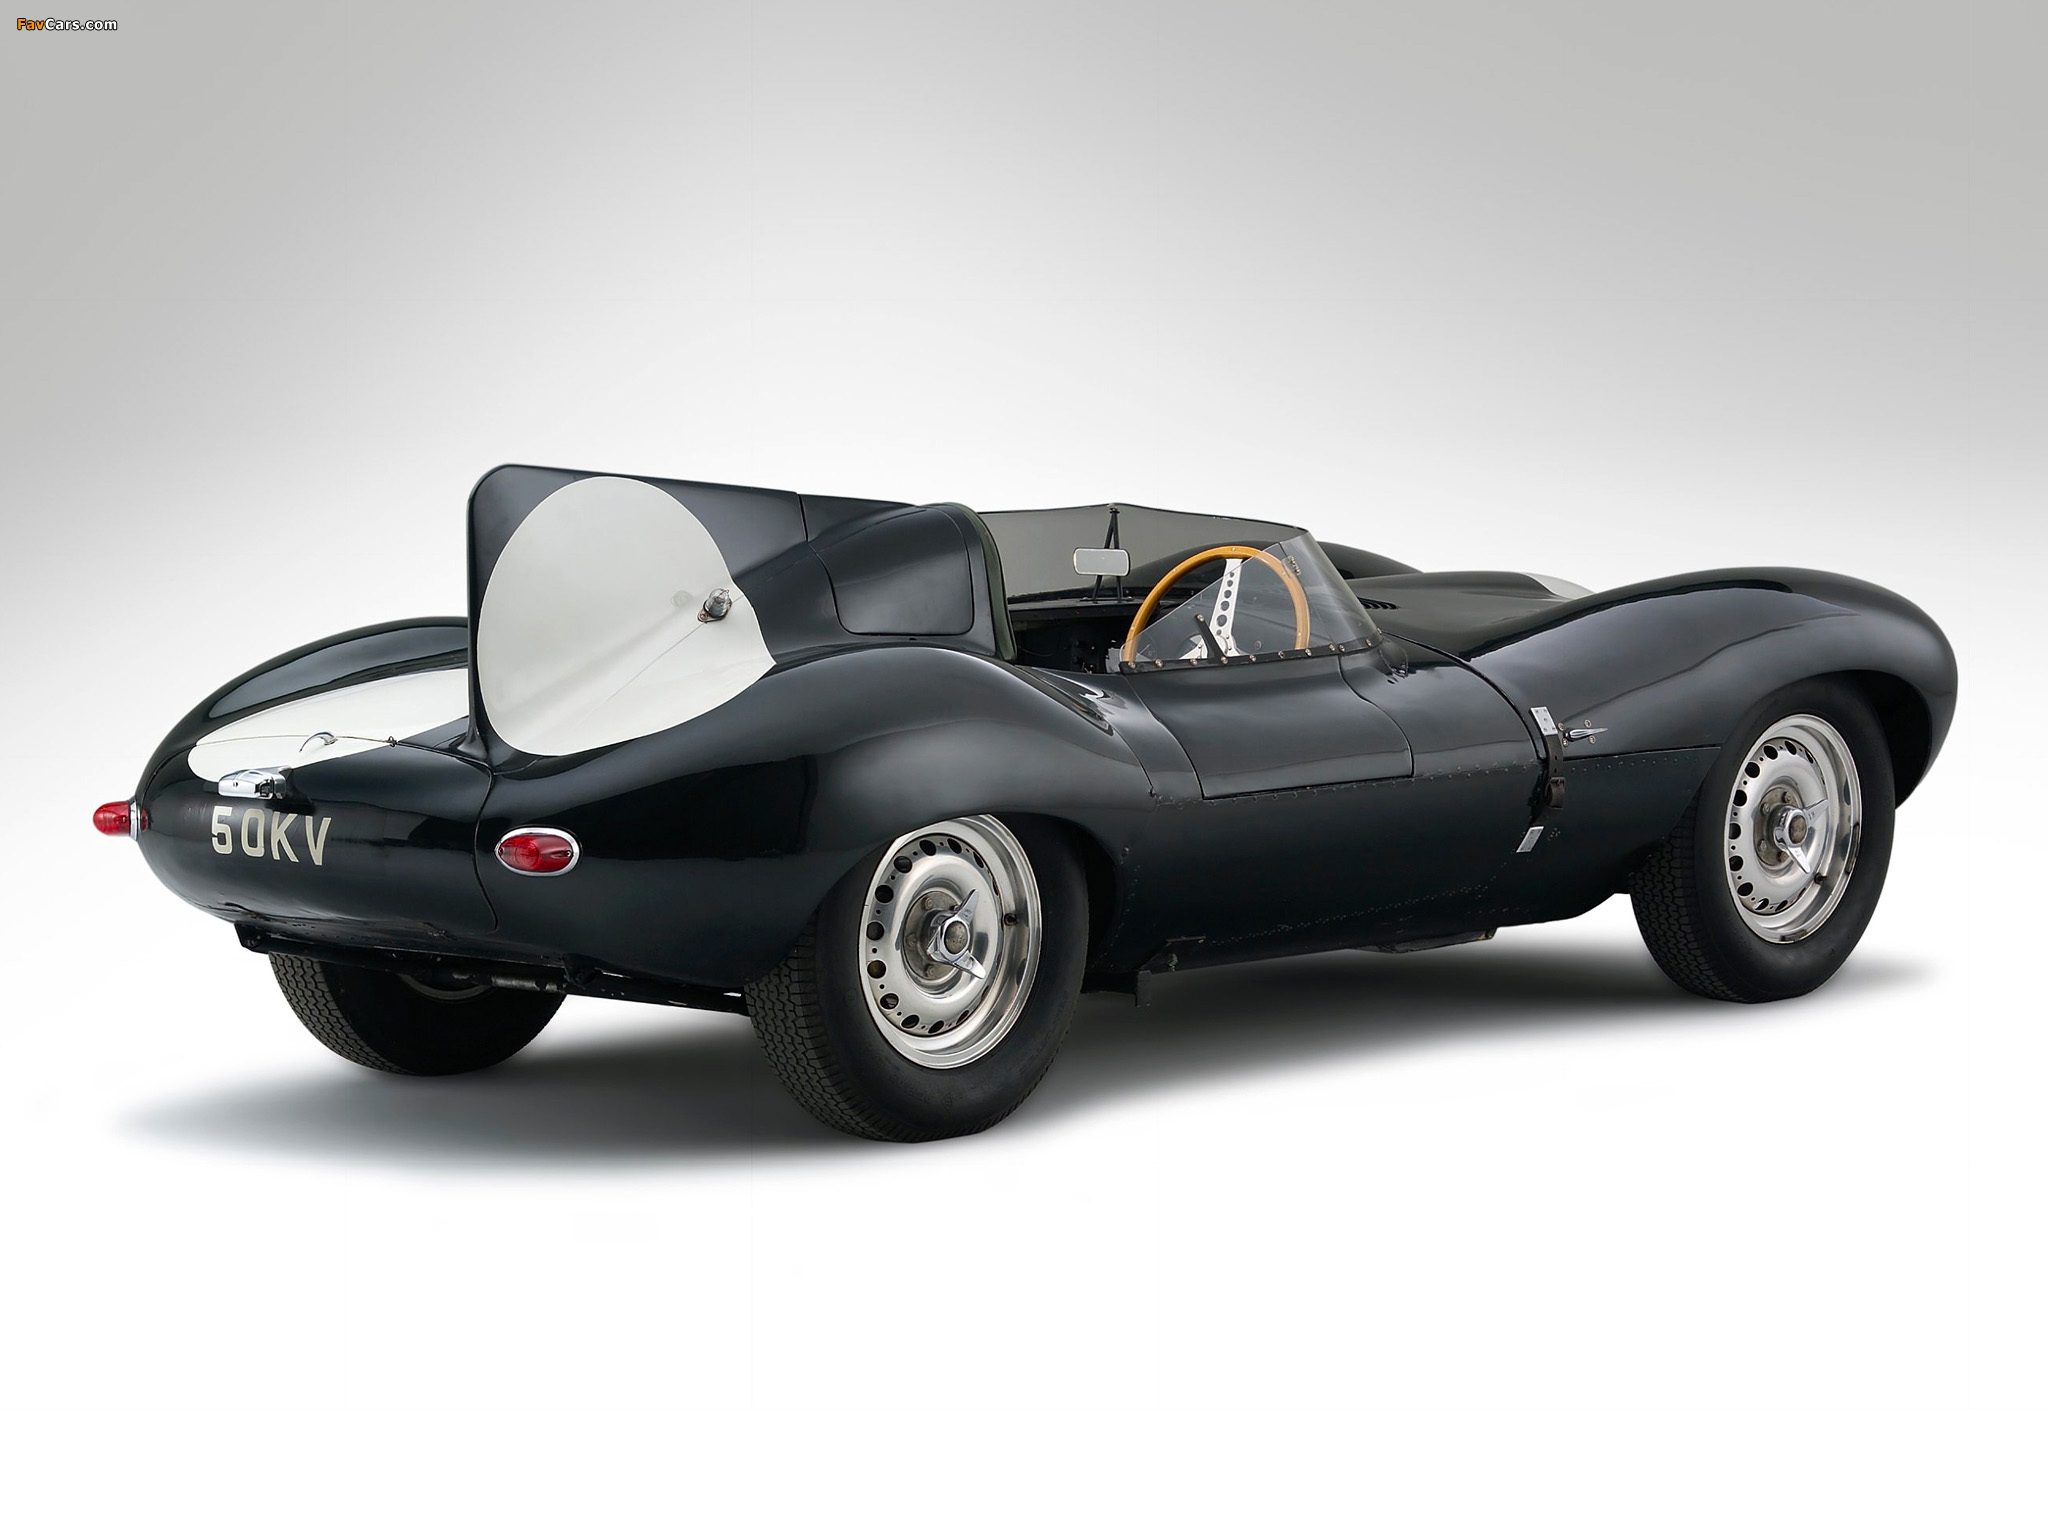 jaguar d type 1955 57 images 2048x1536. Black Bedroom Furniture Sets. Home Design Ideas